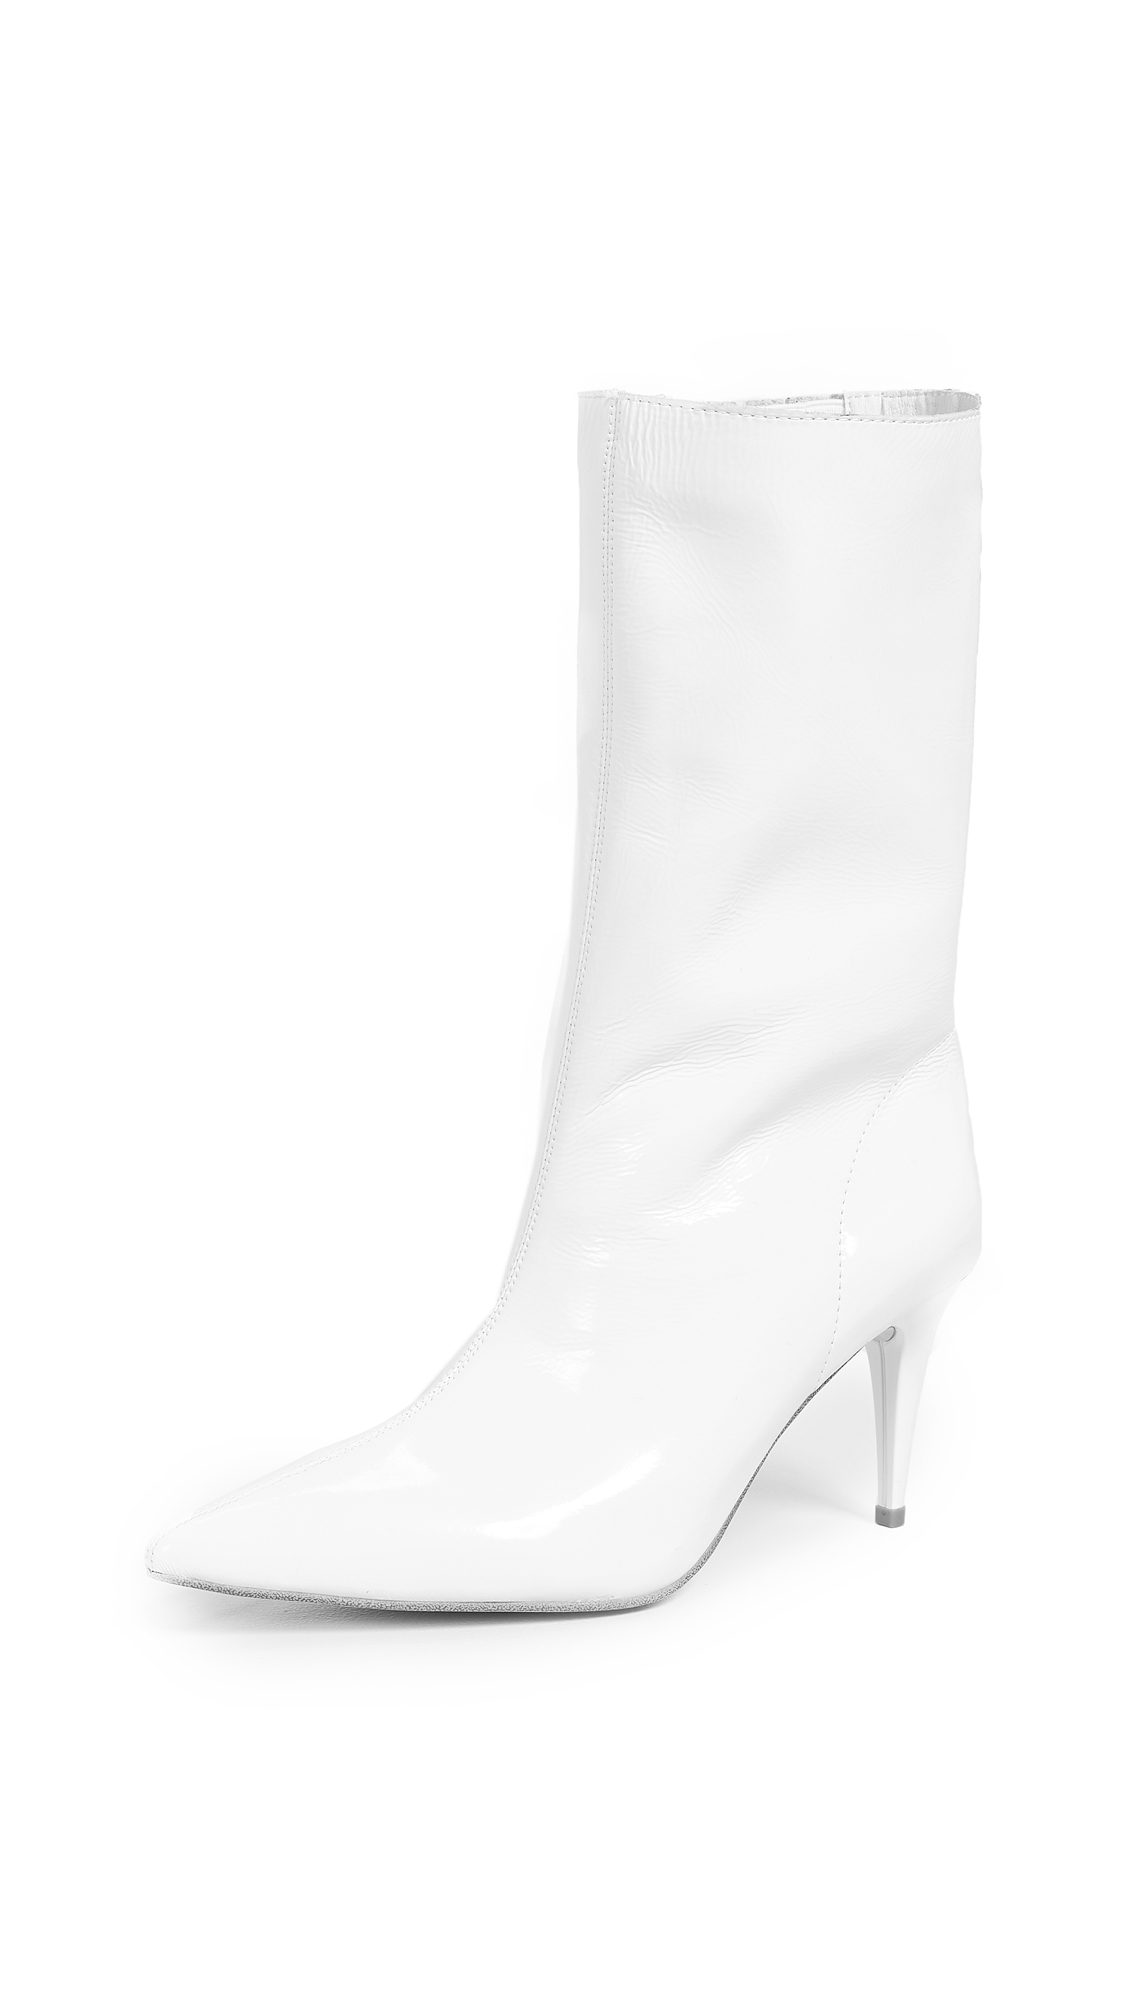 Jeffrey Campbell Pixies Mid Shaft Boots